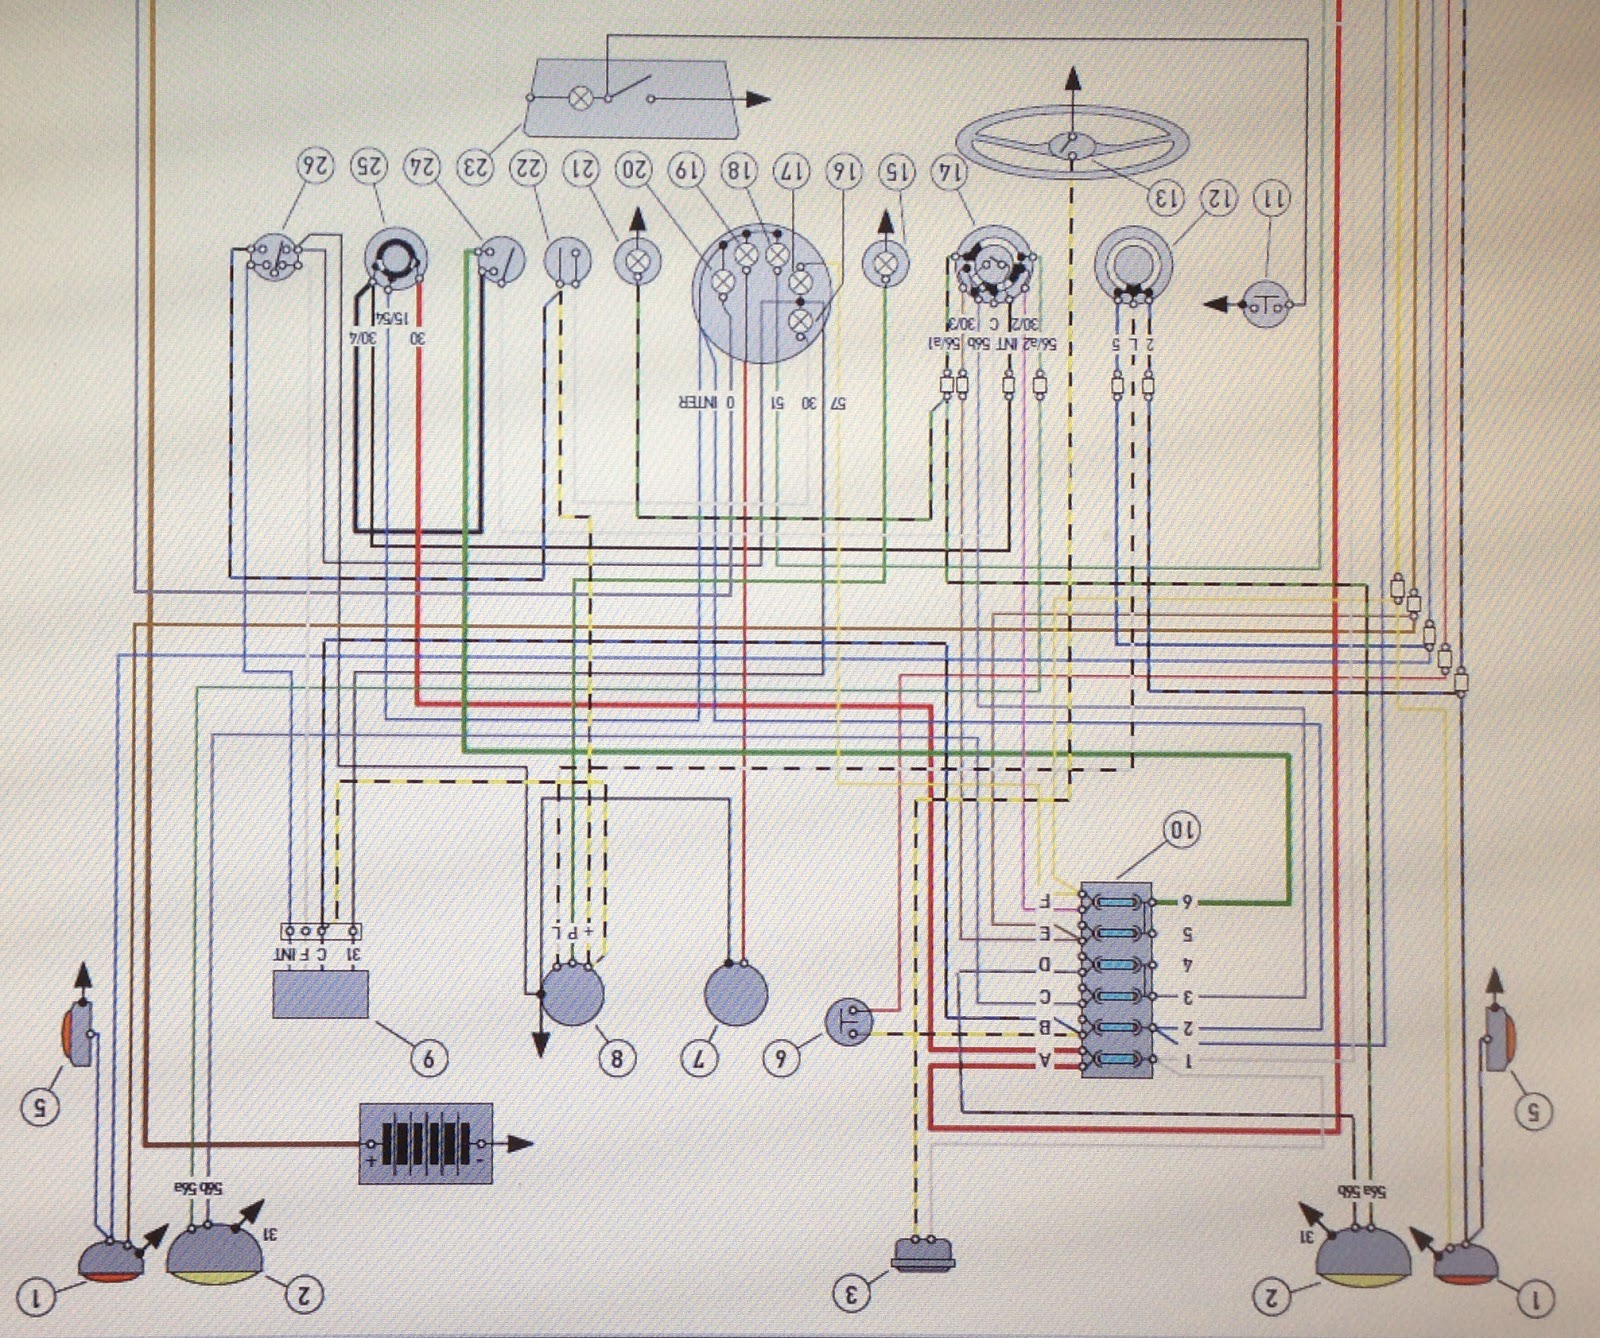 Fiat Wiring Schematics Experts Of Diagram Ham Qc10escb 500 Classic Great Design U2022 Rh Homewerk Co Hvac